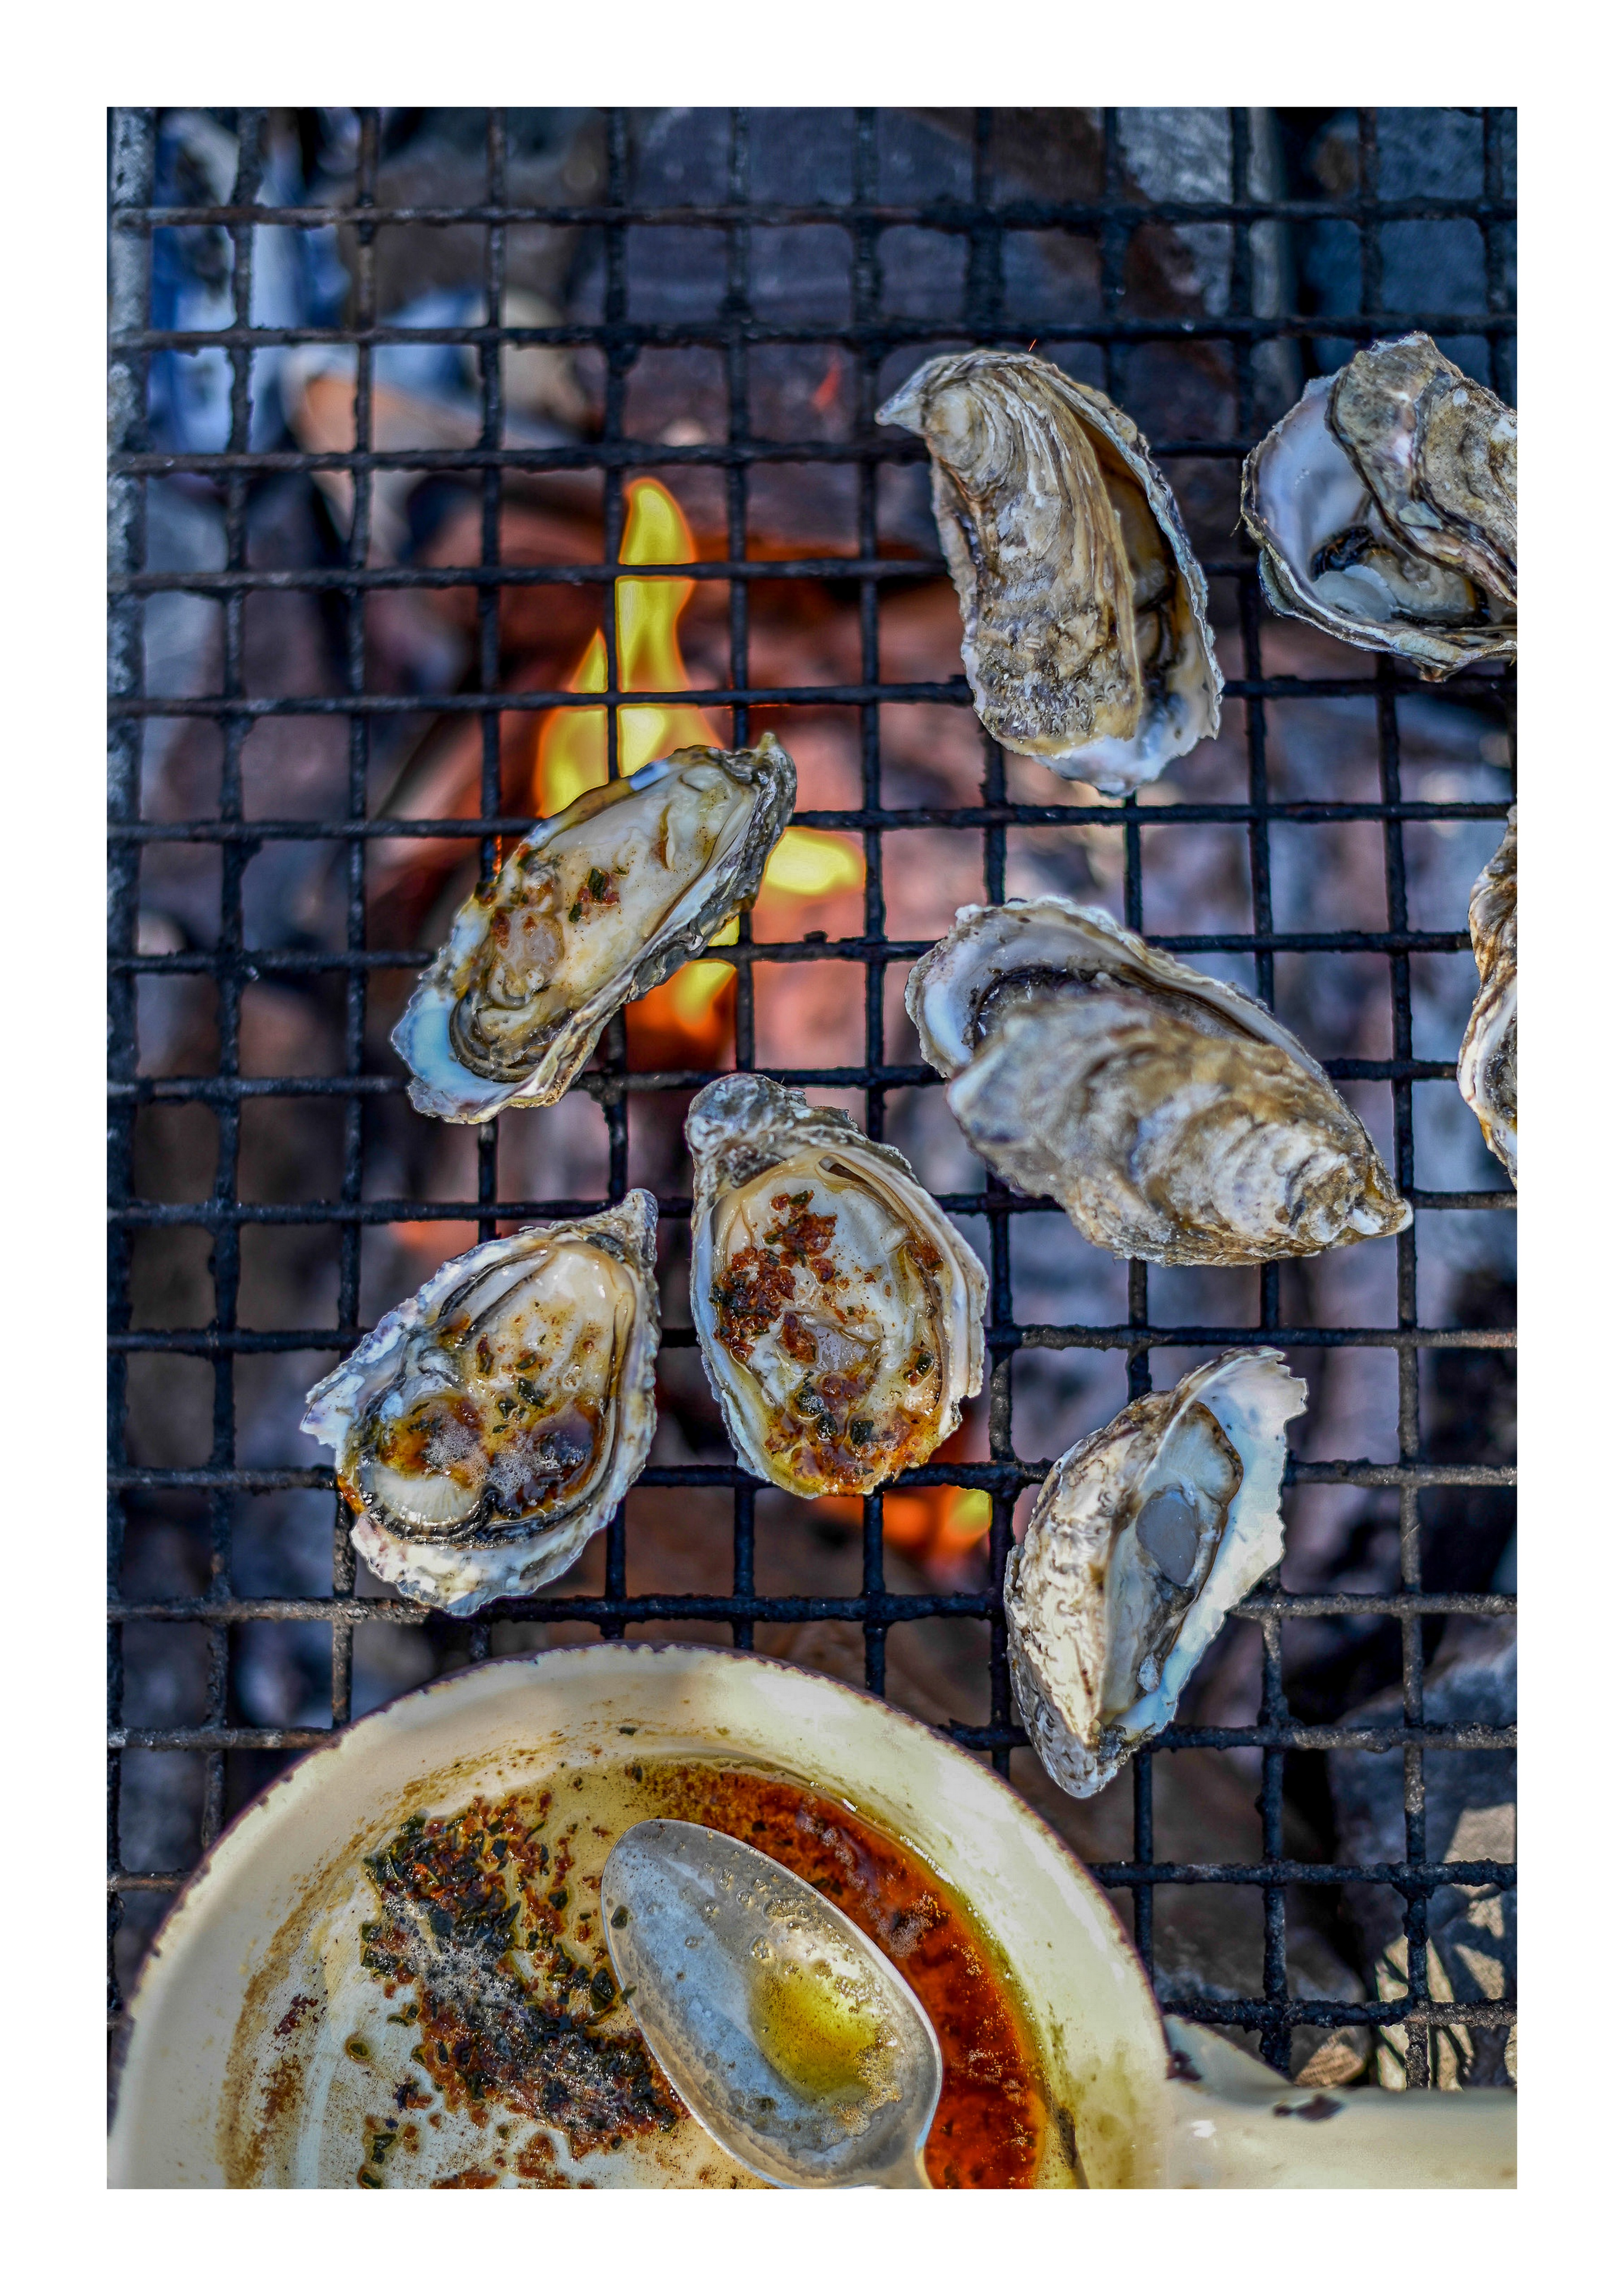 FIRE-ROASTED OYSTERS WITH BOKKOM BUTTER